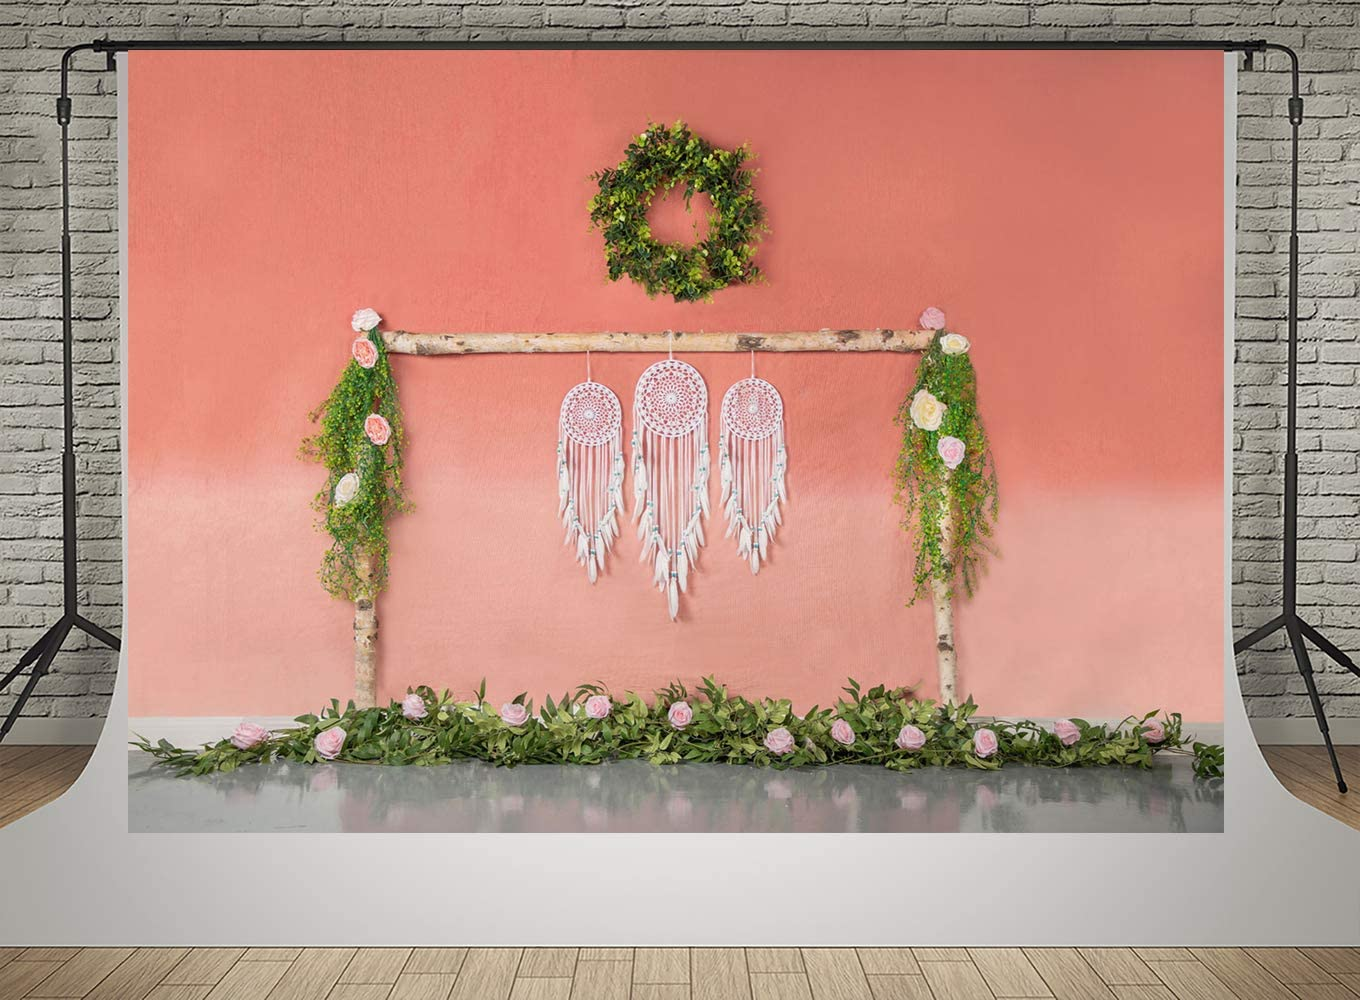 Kate White Dream Catcher Photography Backdrops 20x10ft Pink Painting Wall Pink Flowers Background Spring Green Tree Branches Backdrop Kids Shooting